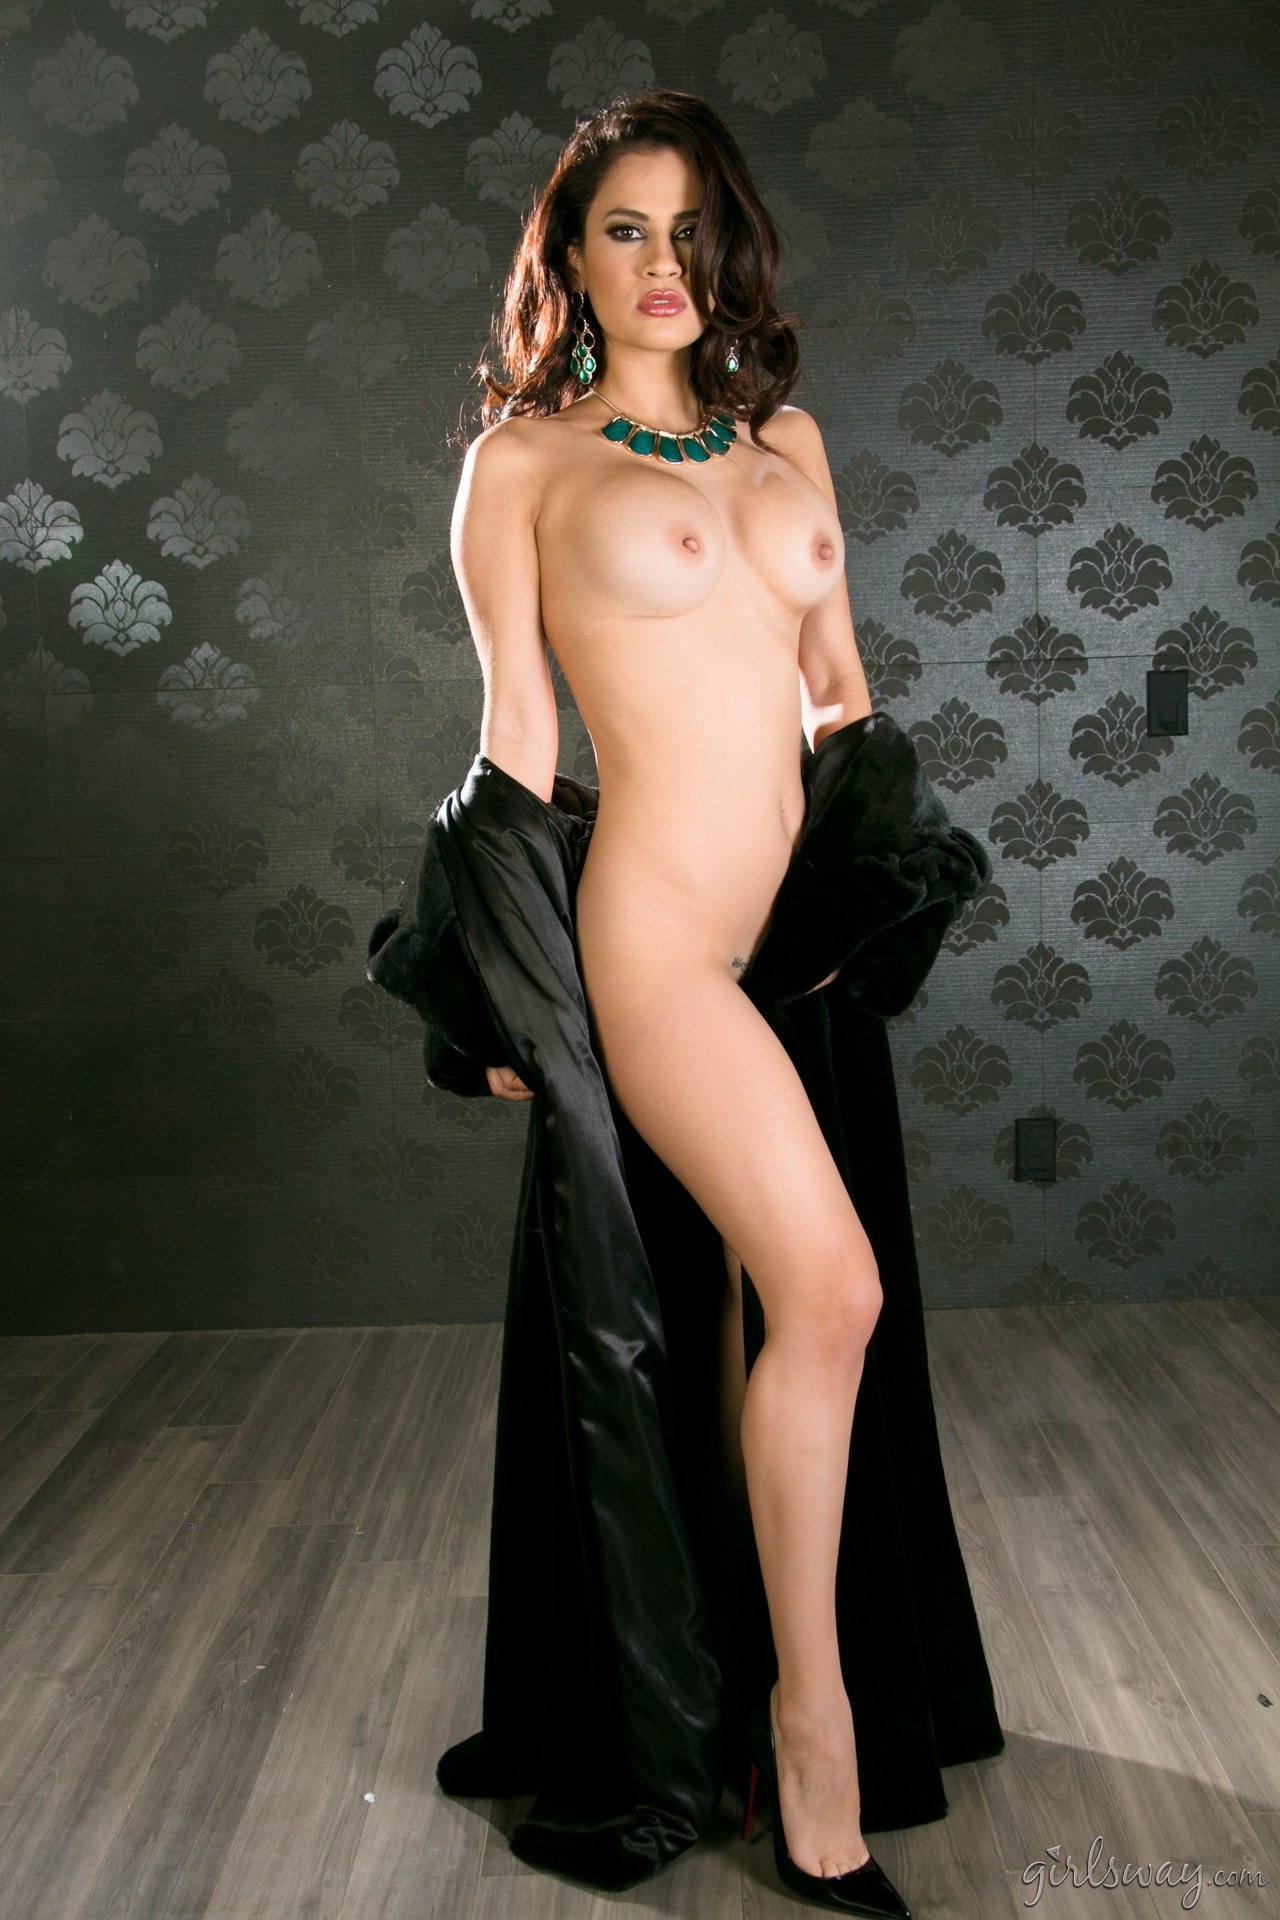 femdom slave girl there